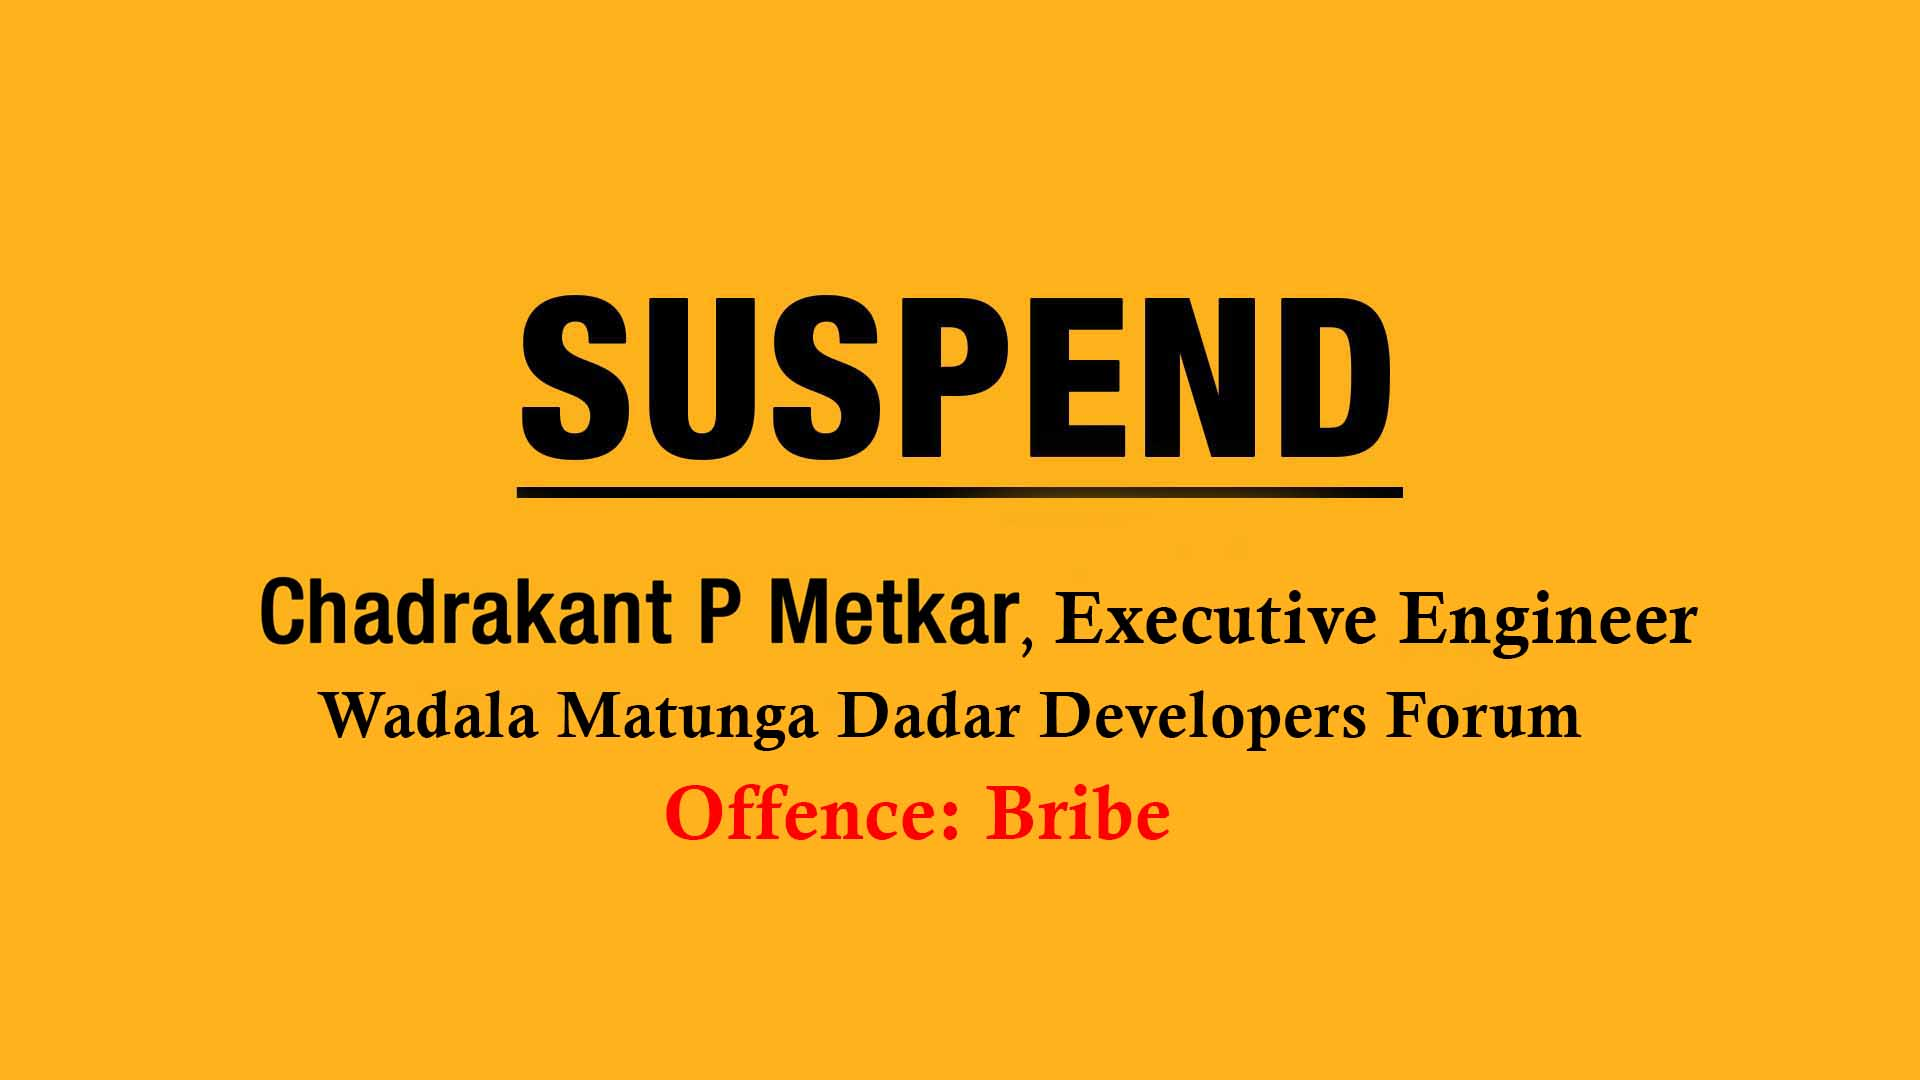 strict action against bribe